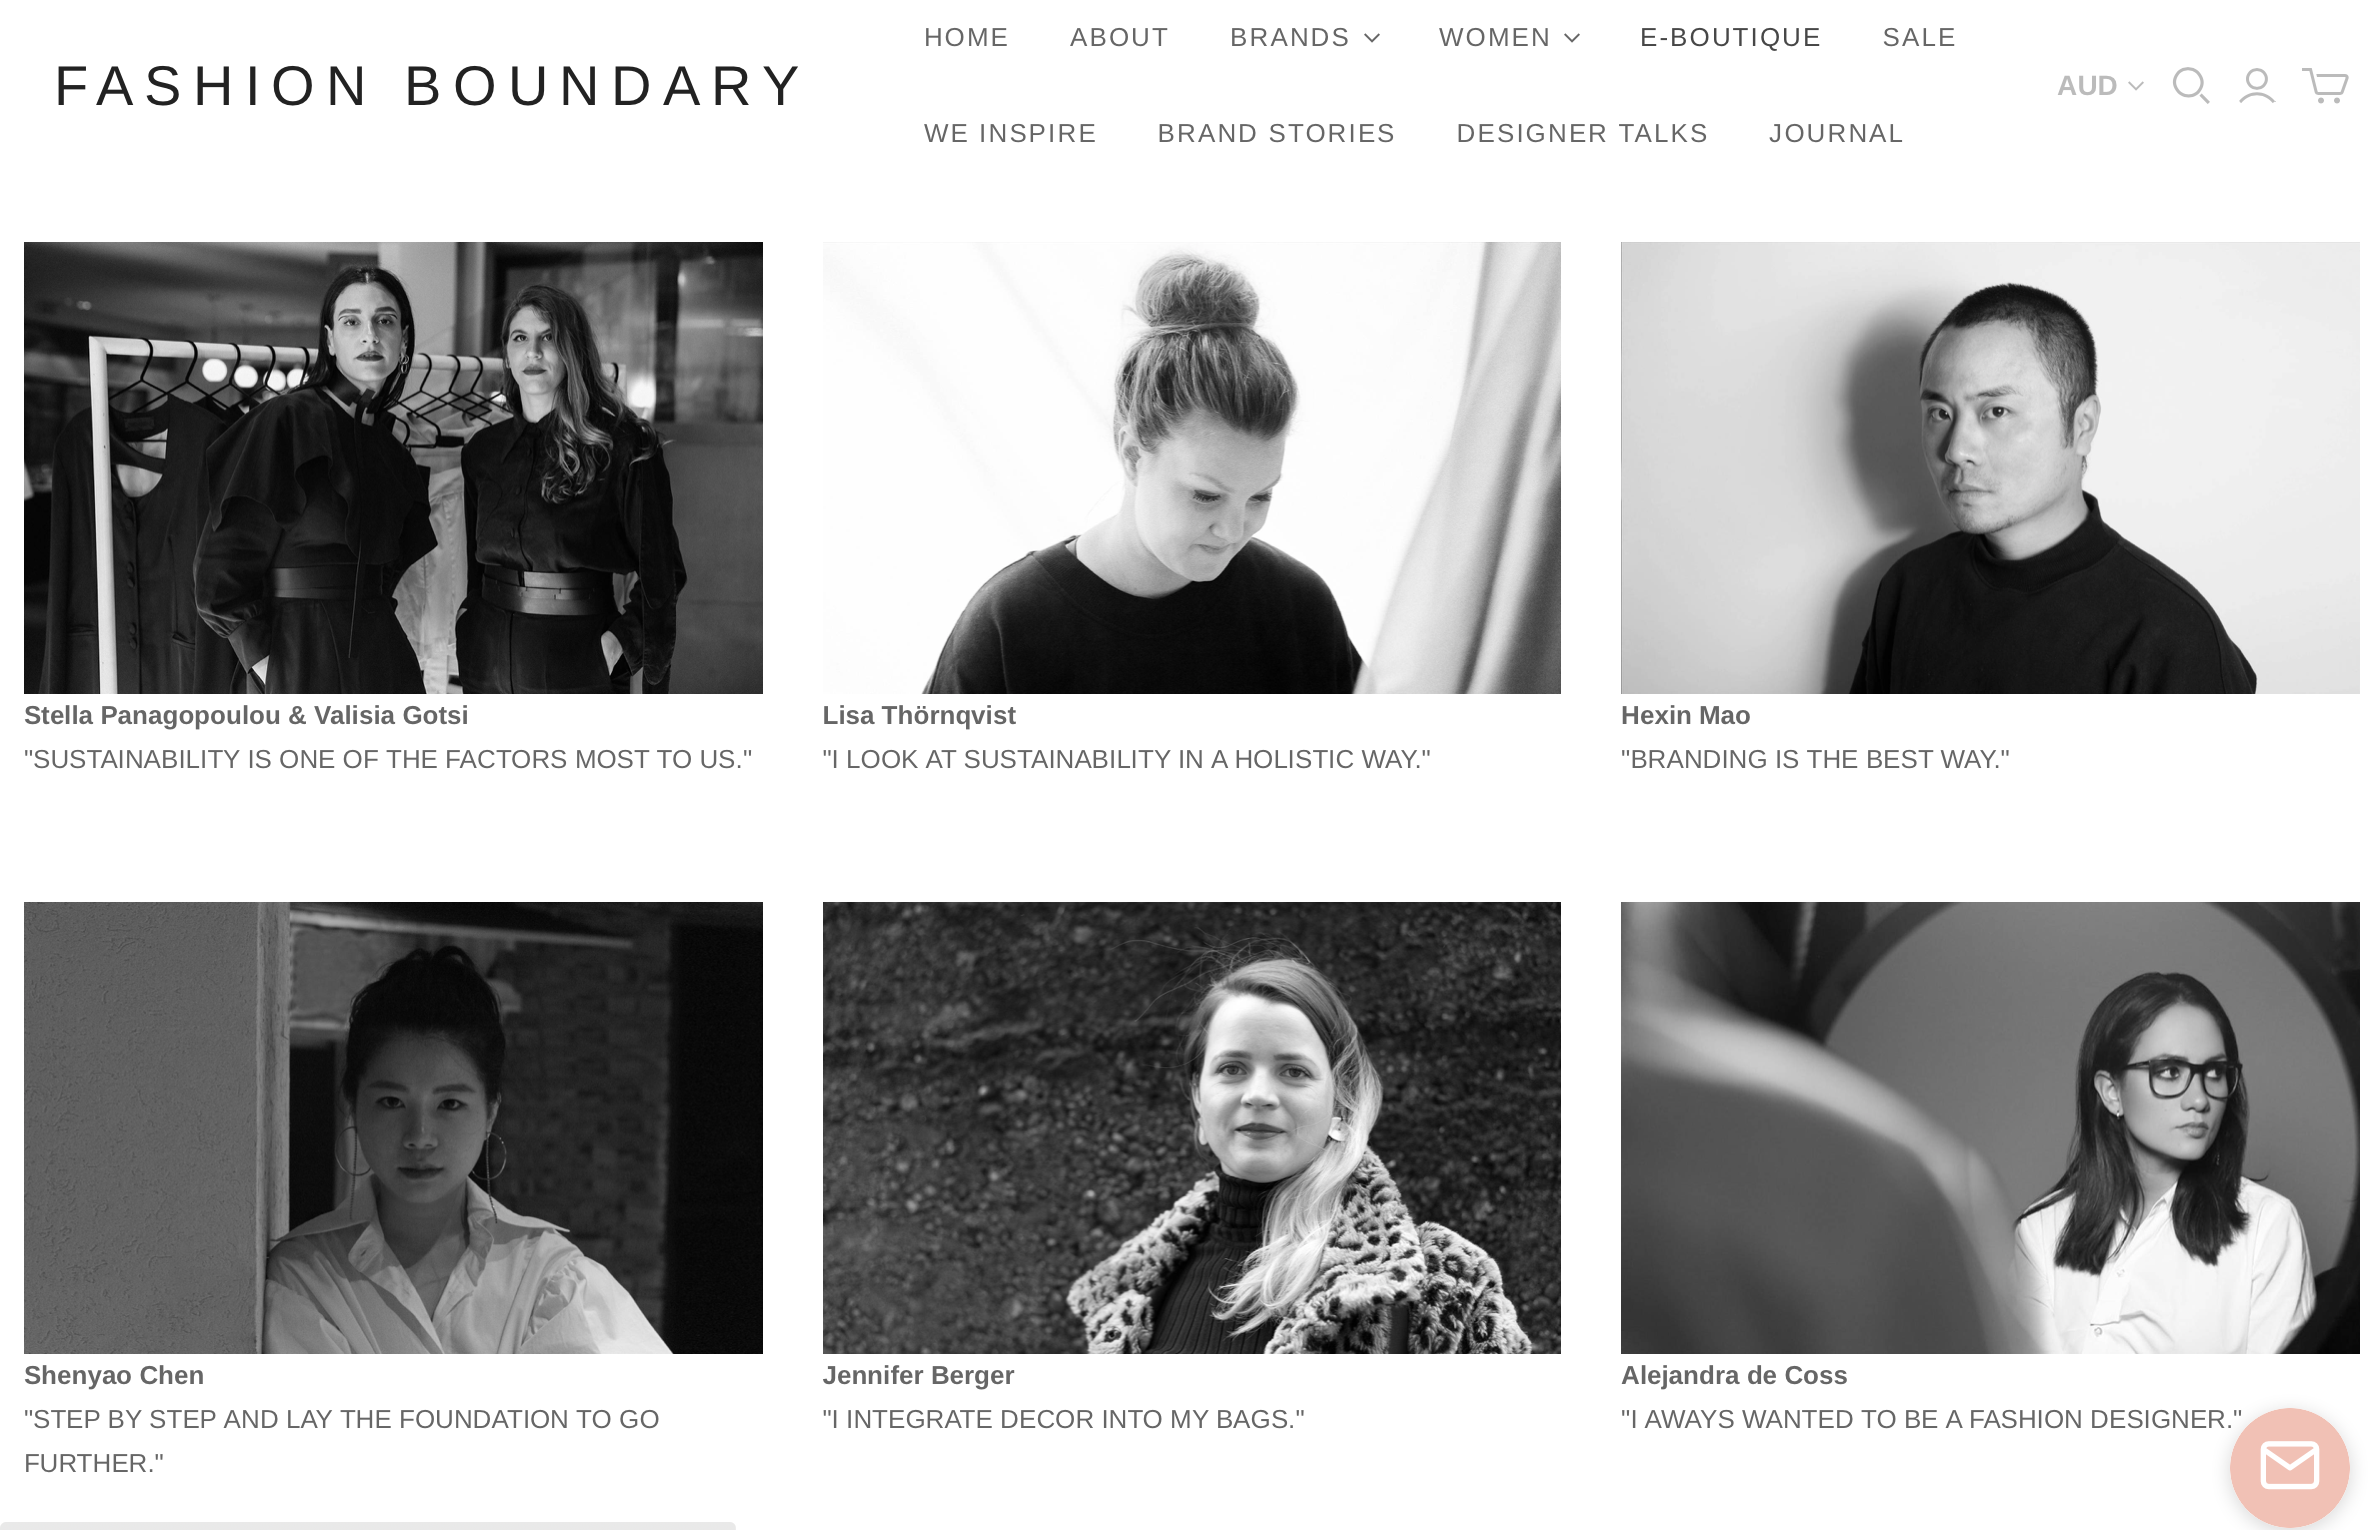 Learn more about the designer… - https://fashionboundary.com/pages/q-a-madi-jennifer-bergerhttps://fashionboundary.com/blogs/news/madi